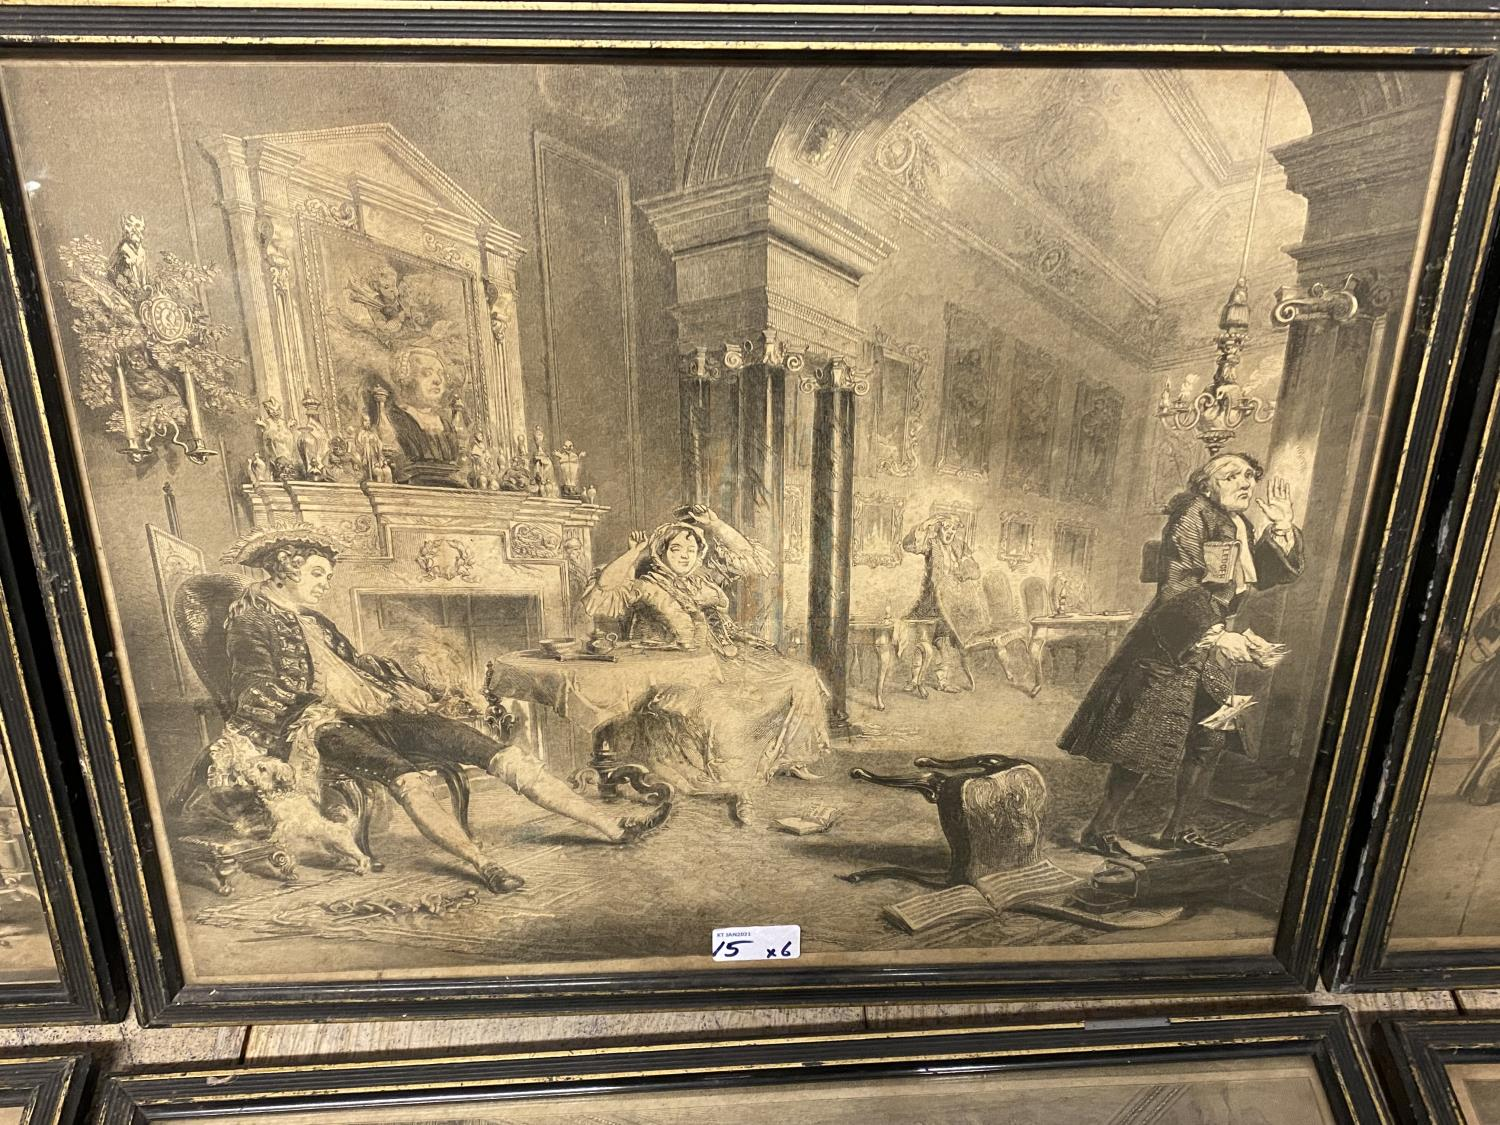 Six Hogarth black and white engravings, various plates, including Marriage a la Mode, in original - Image 5 of 8